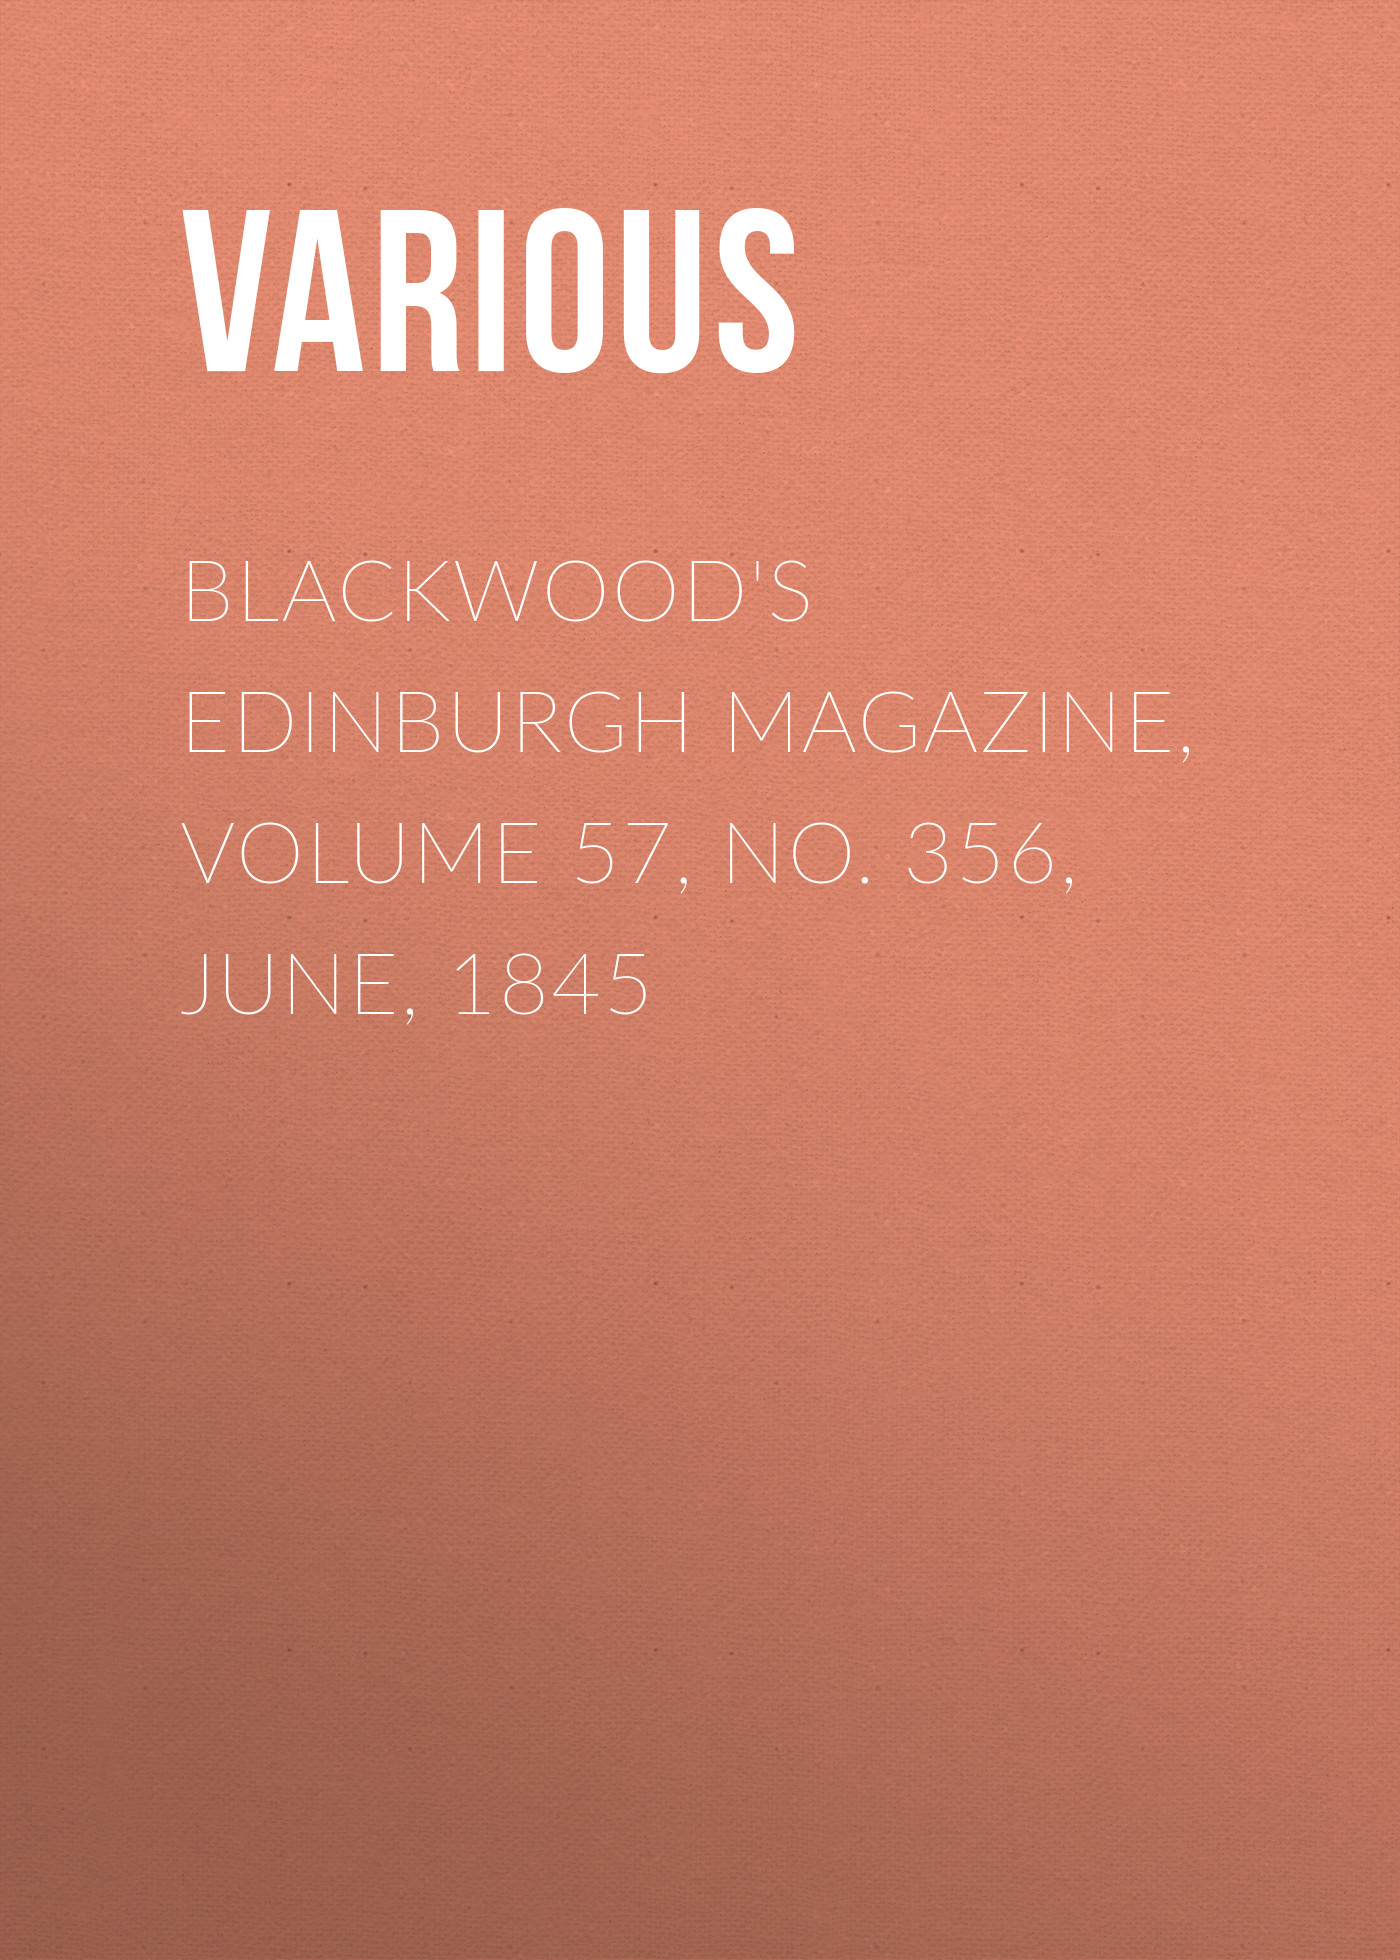 лучшая цена Various Blackwood's Edinburgh Magazine, Volume 57, No. 356, June, 1845